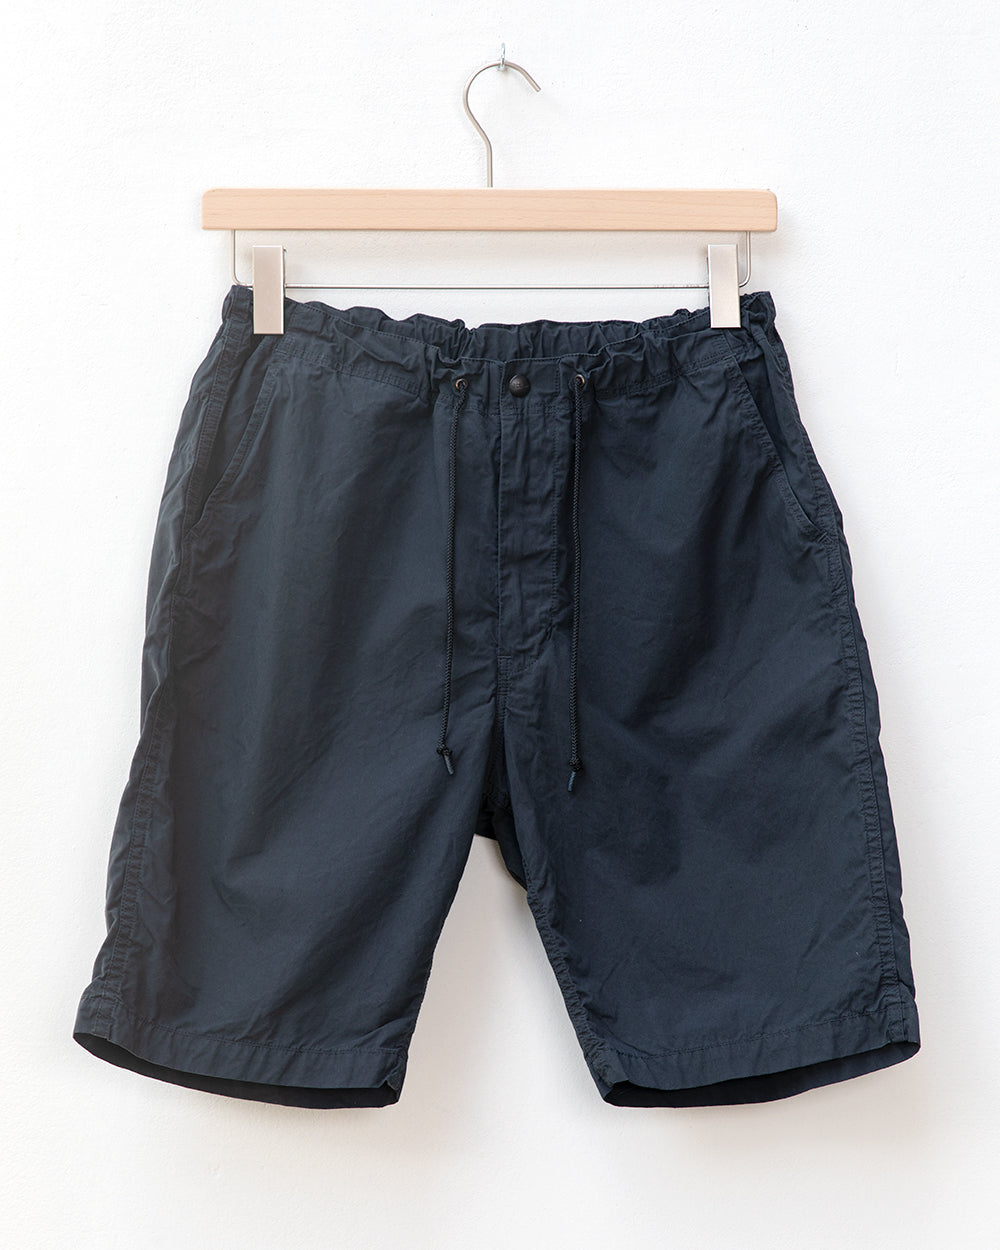 New Yorker Short - Charcoal Grey